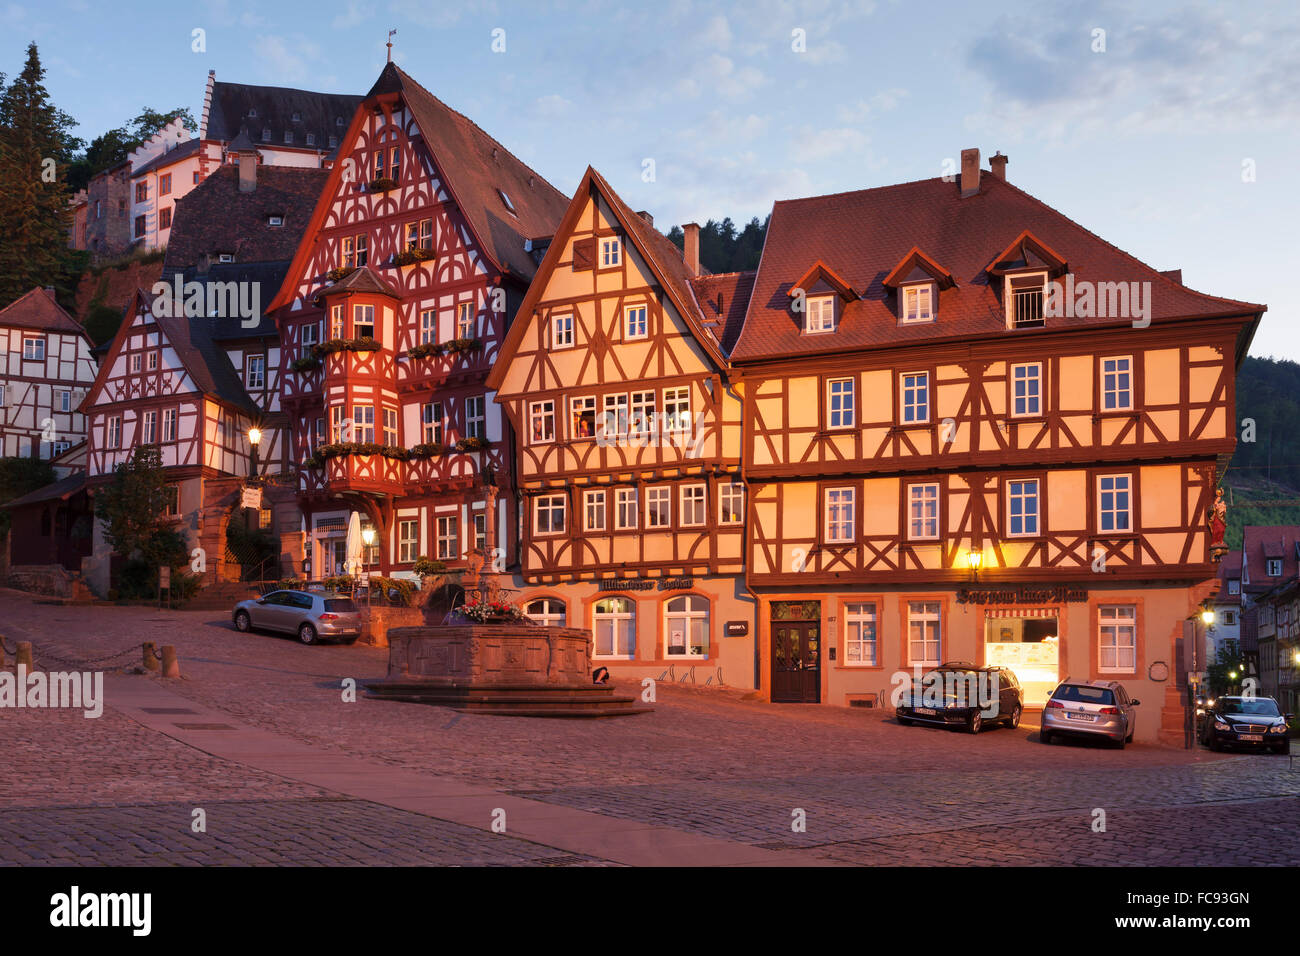 Market Square with half-timbered houses and Mildenburg Castle, old town of Miltenberg, Franconia, Bavaria, Germany, - Stock Image